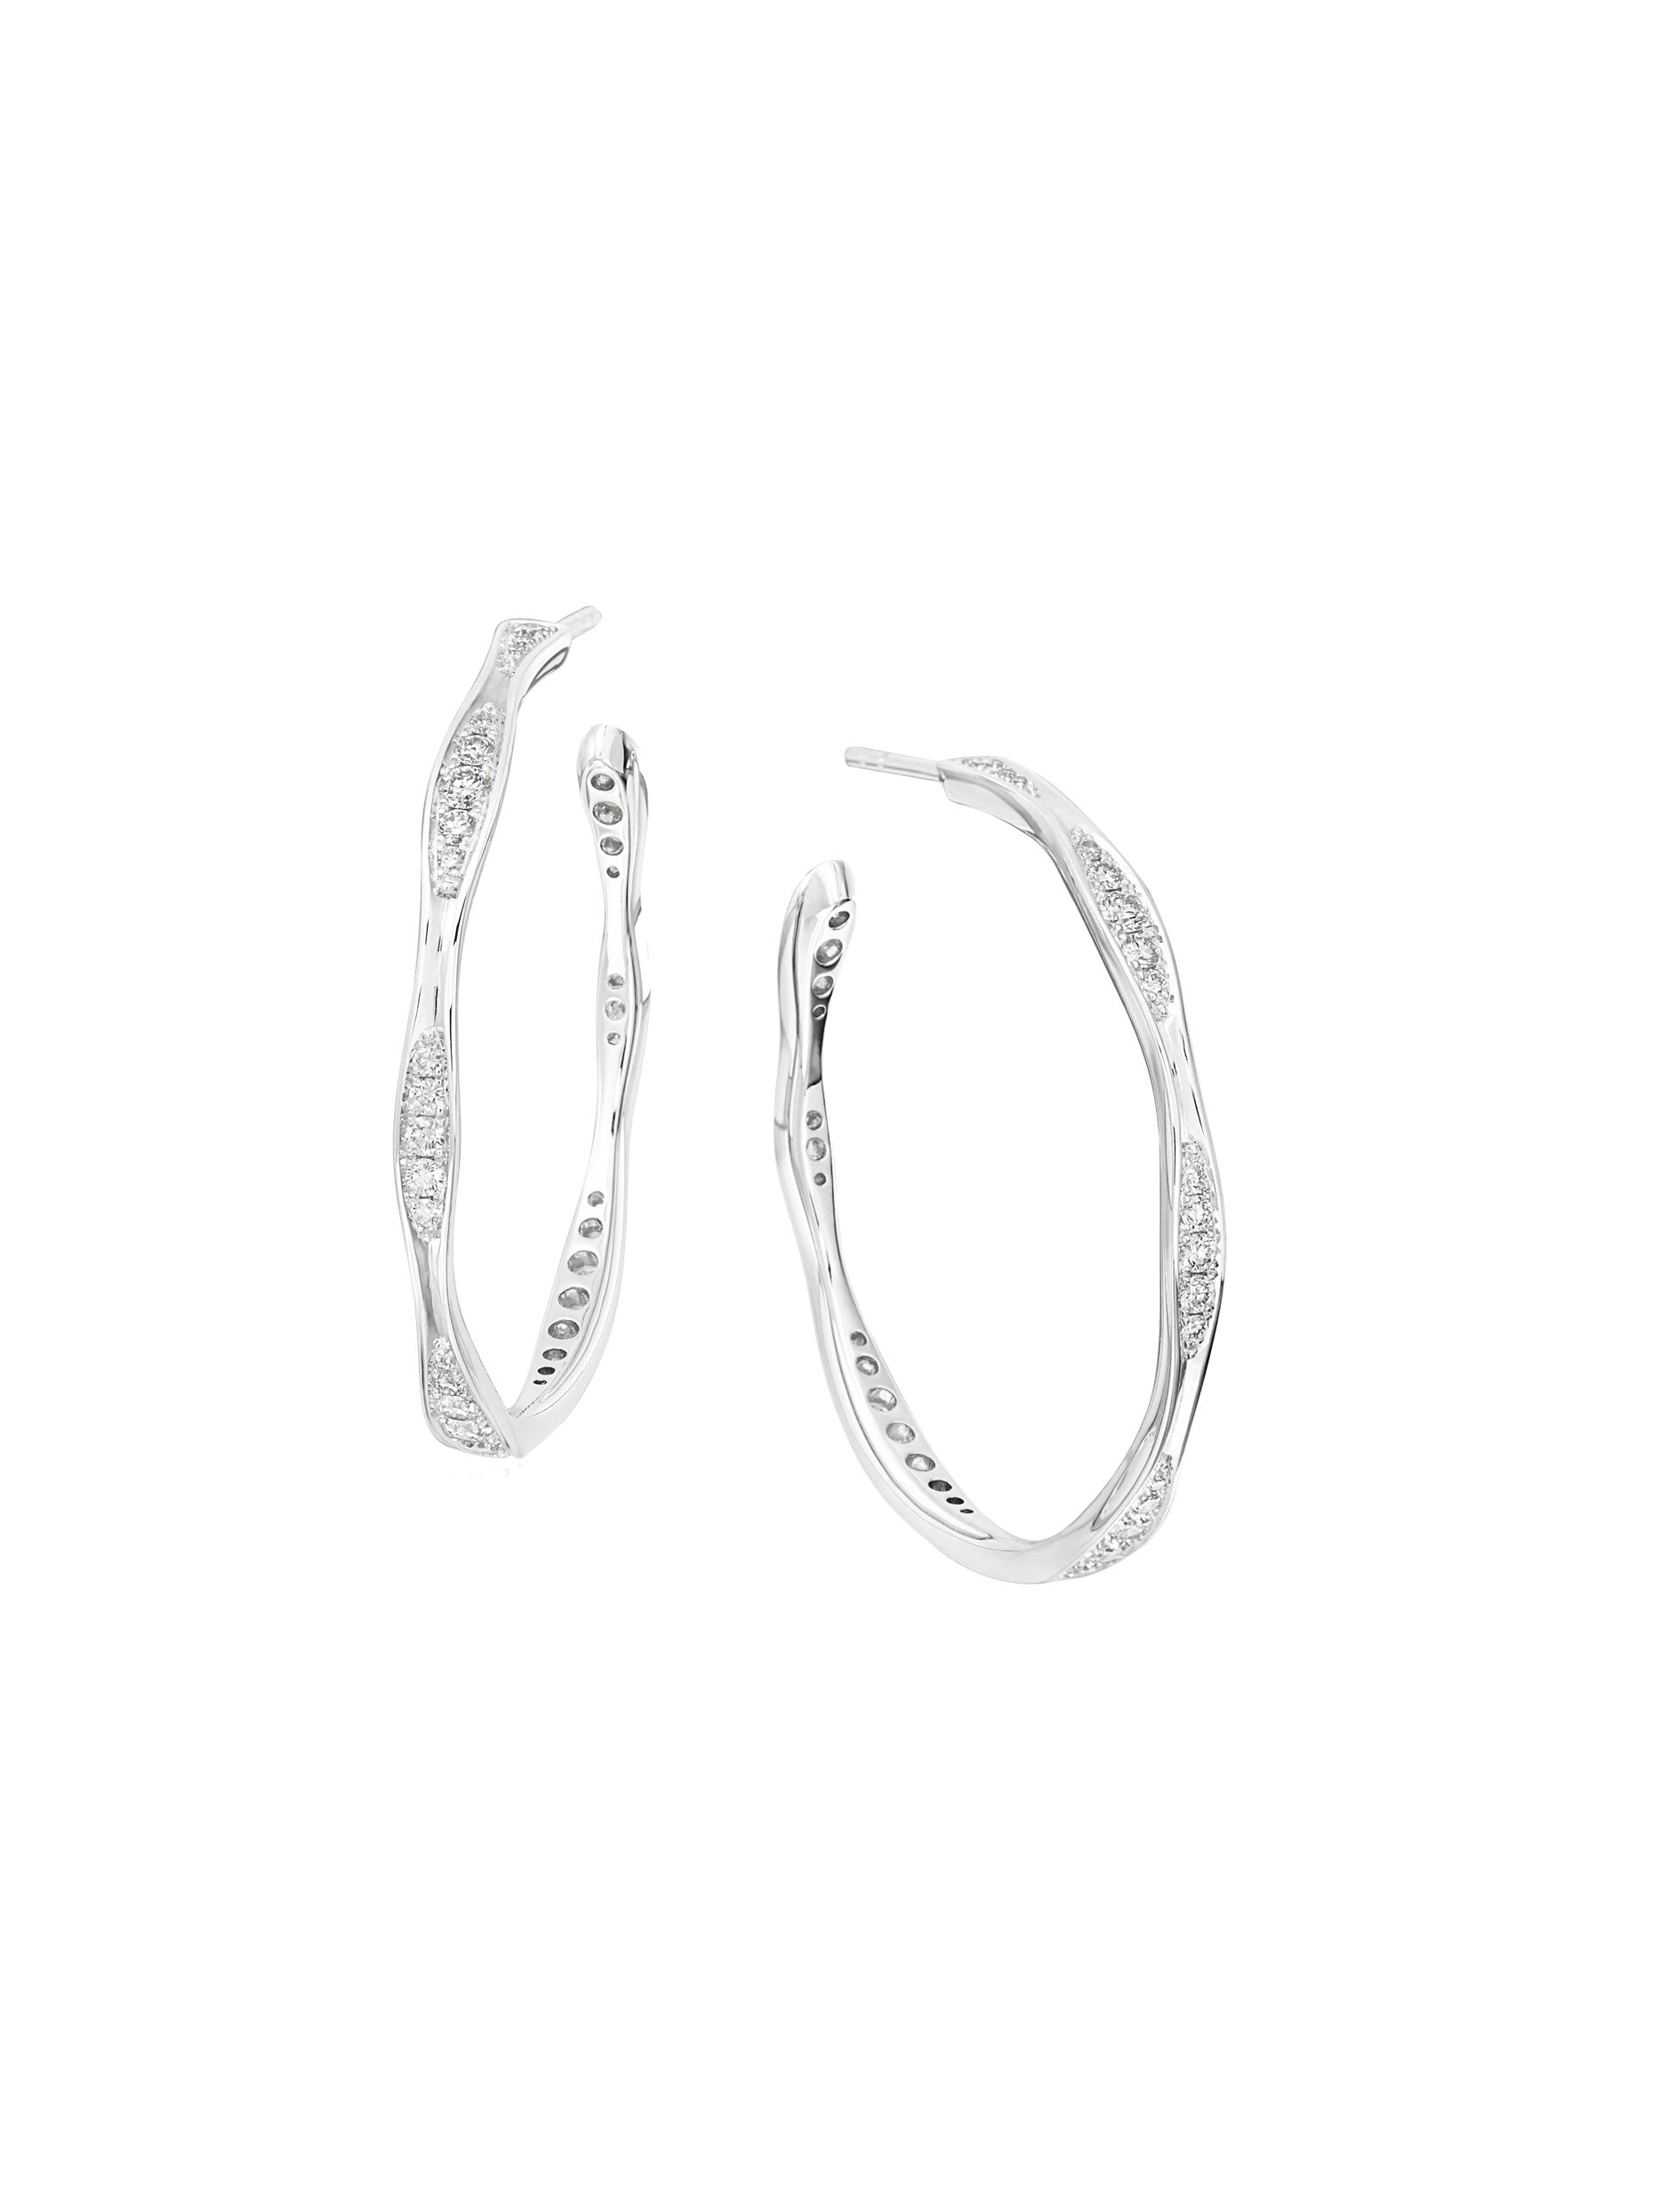 Medium White Gold Wave Diamond Hoop